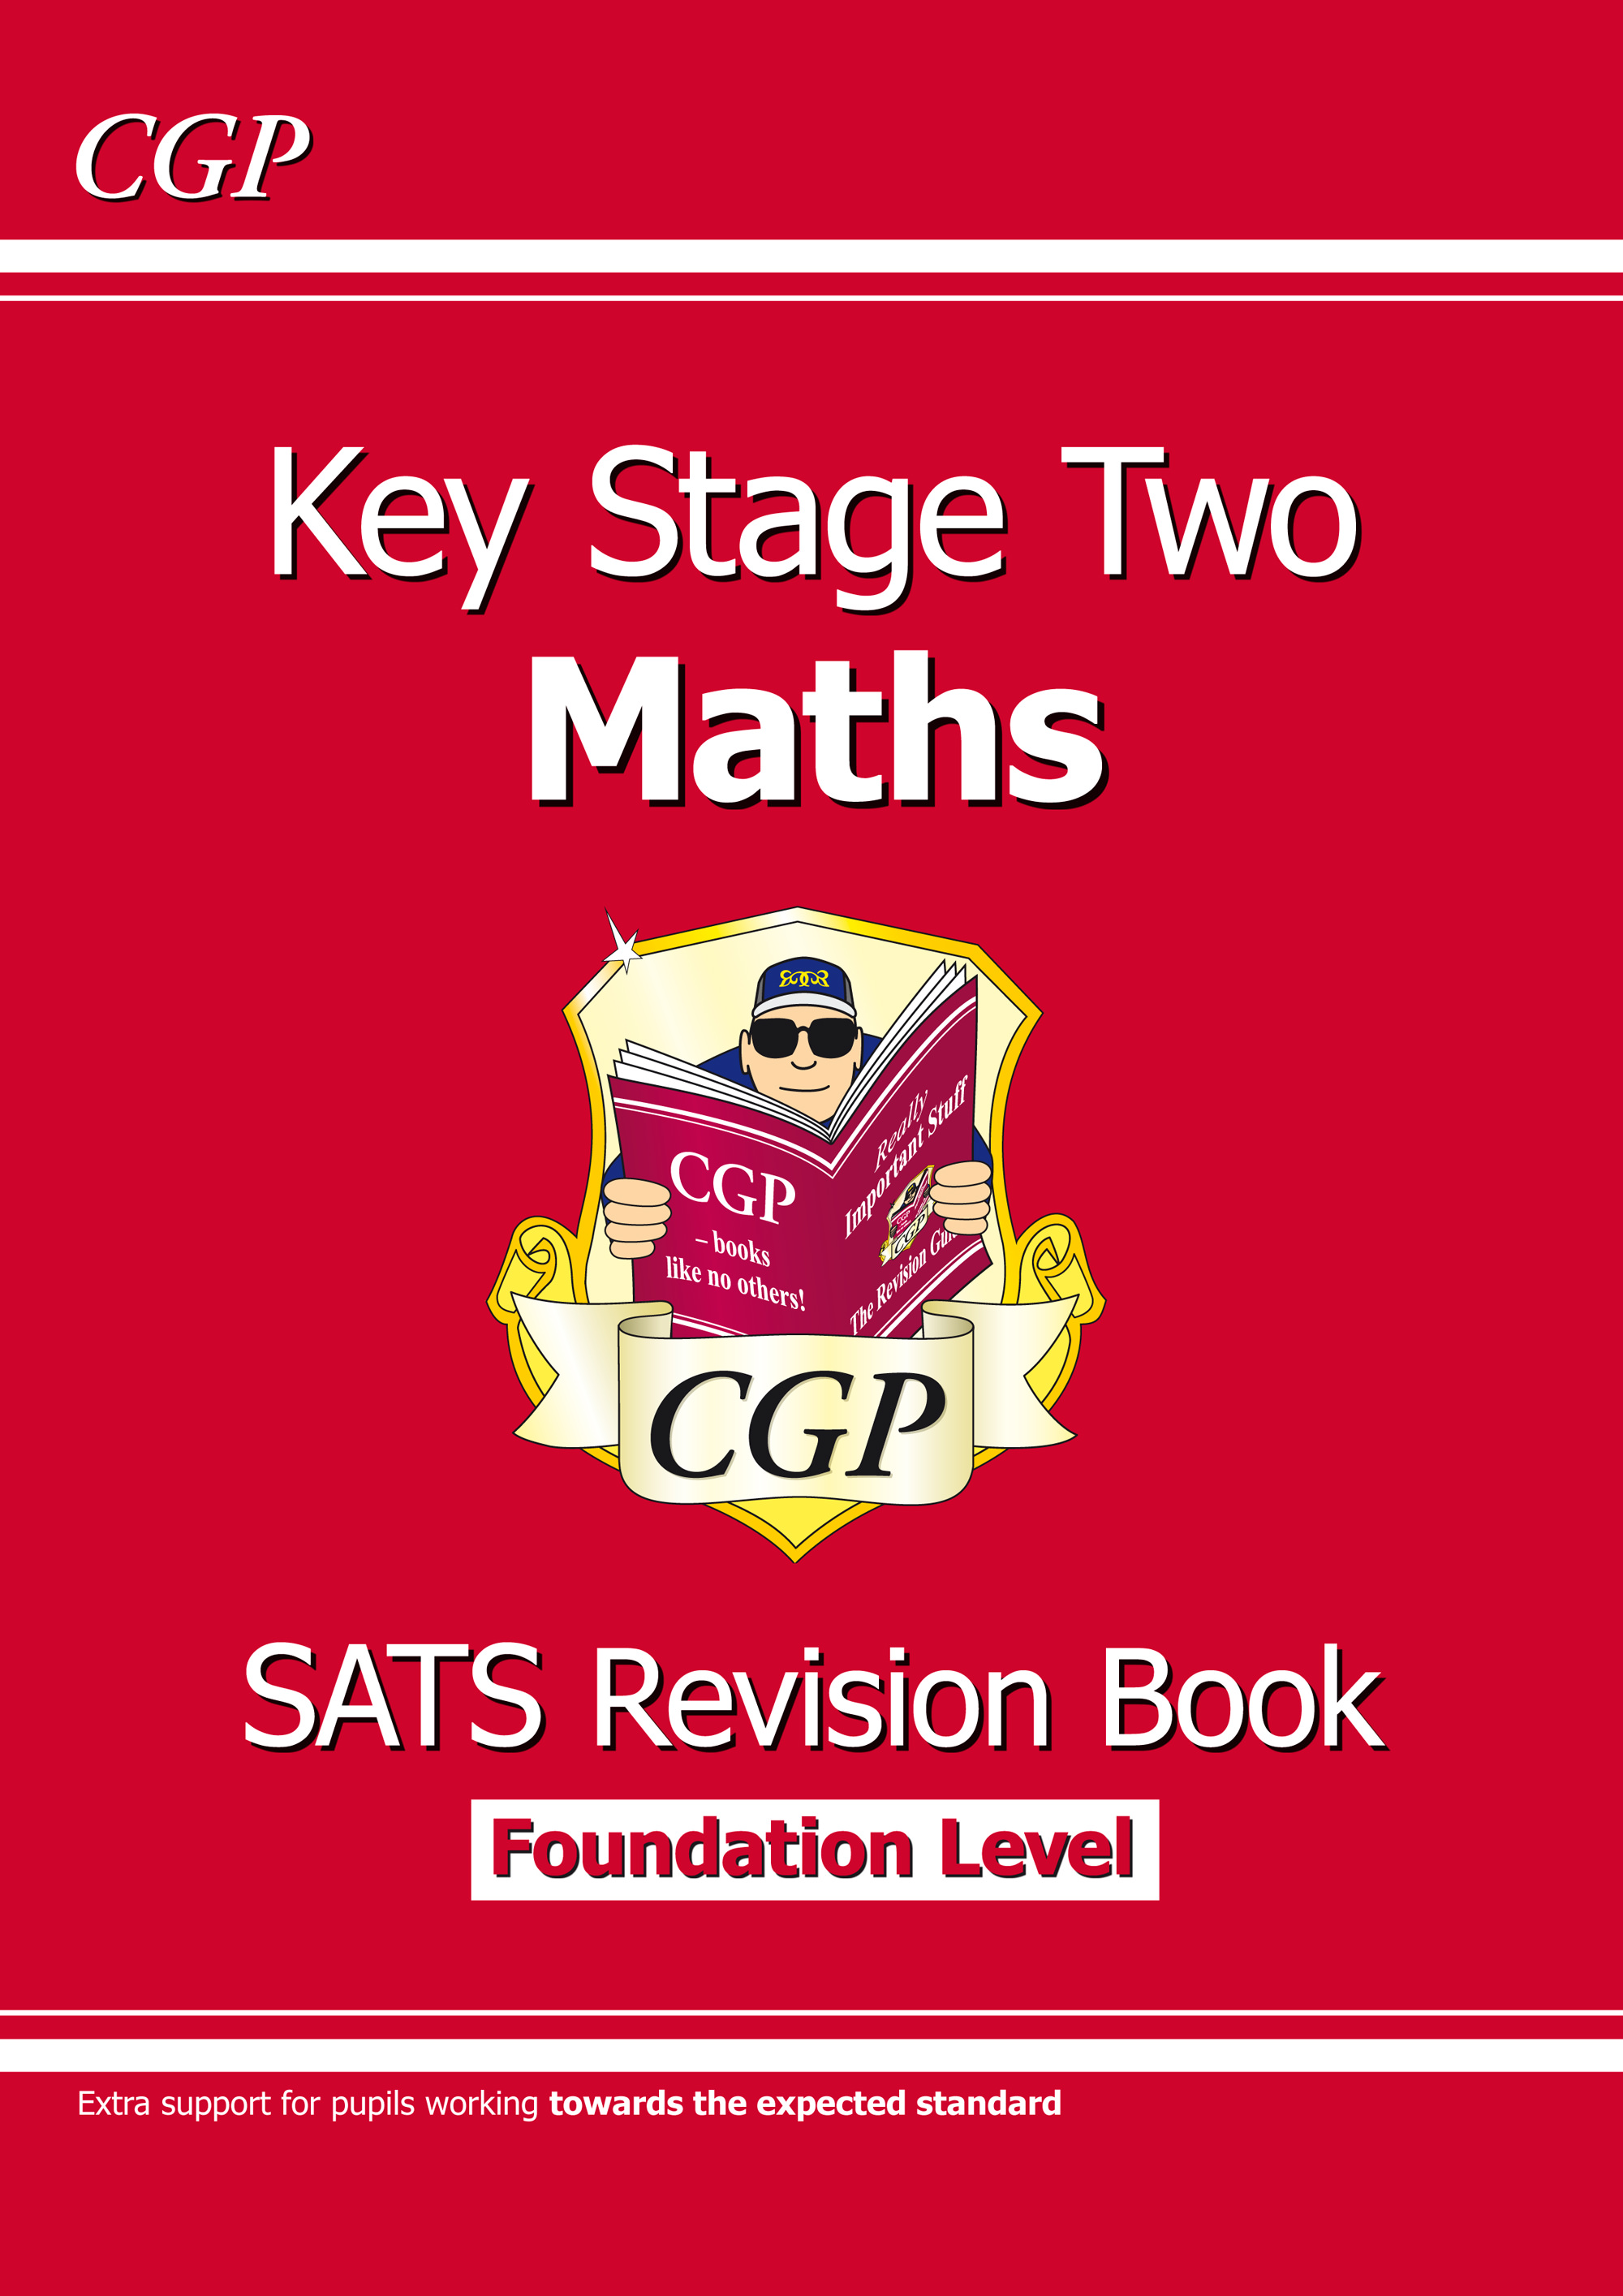 MLBR22 - KS2 Maths Targeted SATs Revision Book - Foundation Level (for tests in 2018 and beyond)